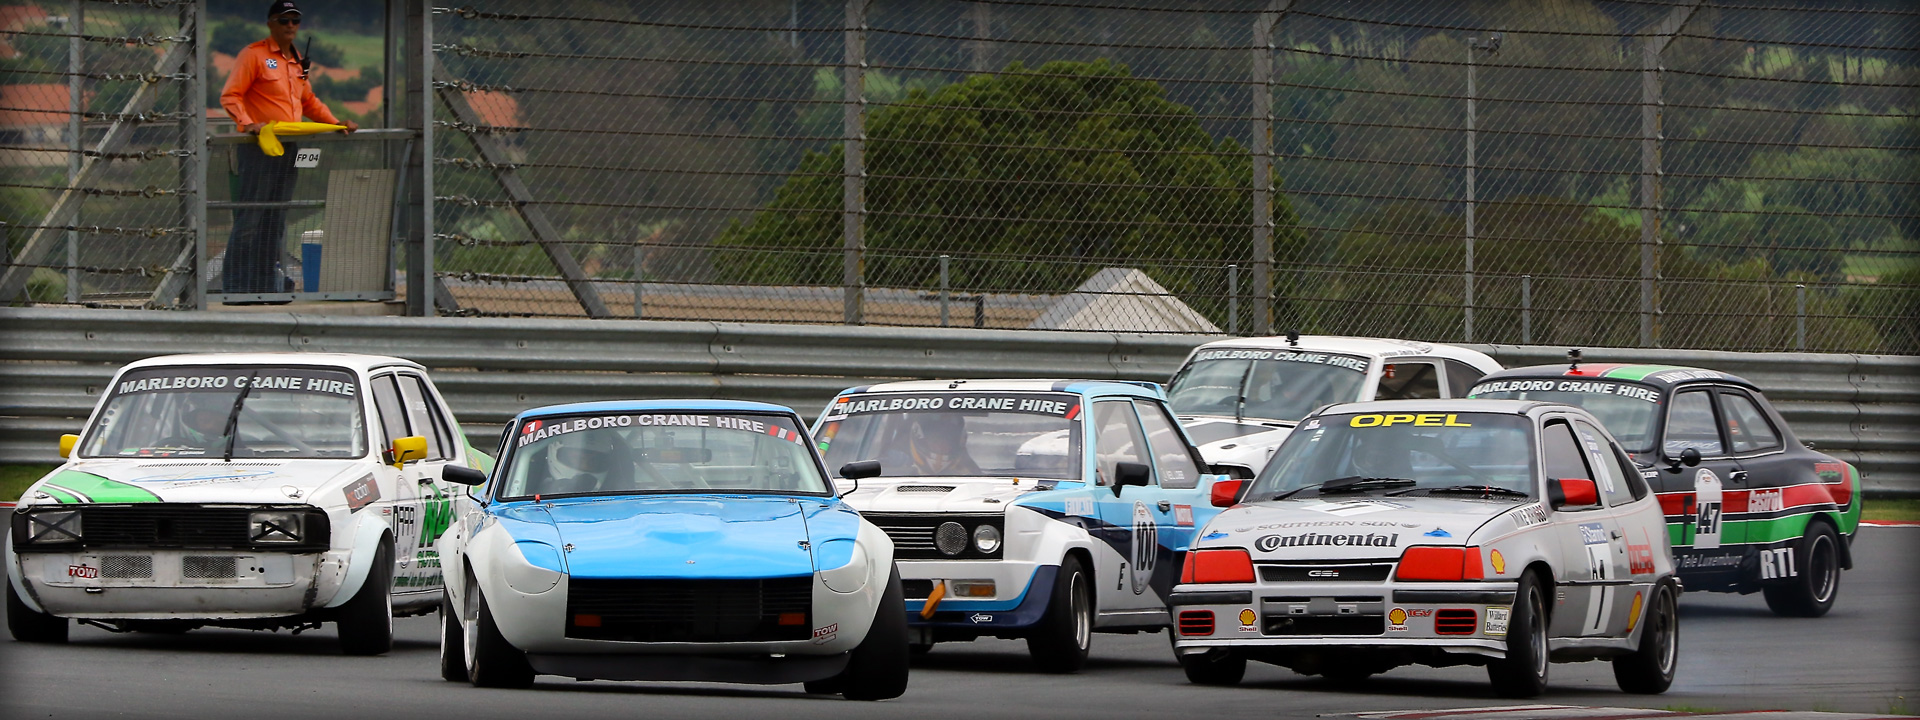 Historic Tour - Round 7 - Kyalami - 2017-12-02 - Photographs